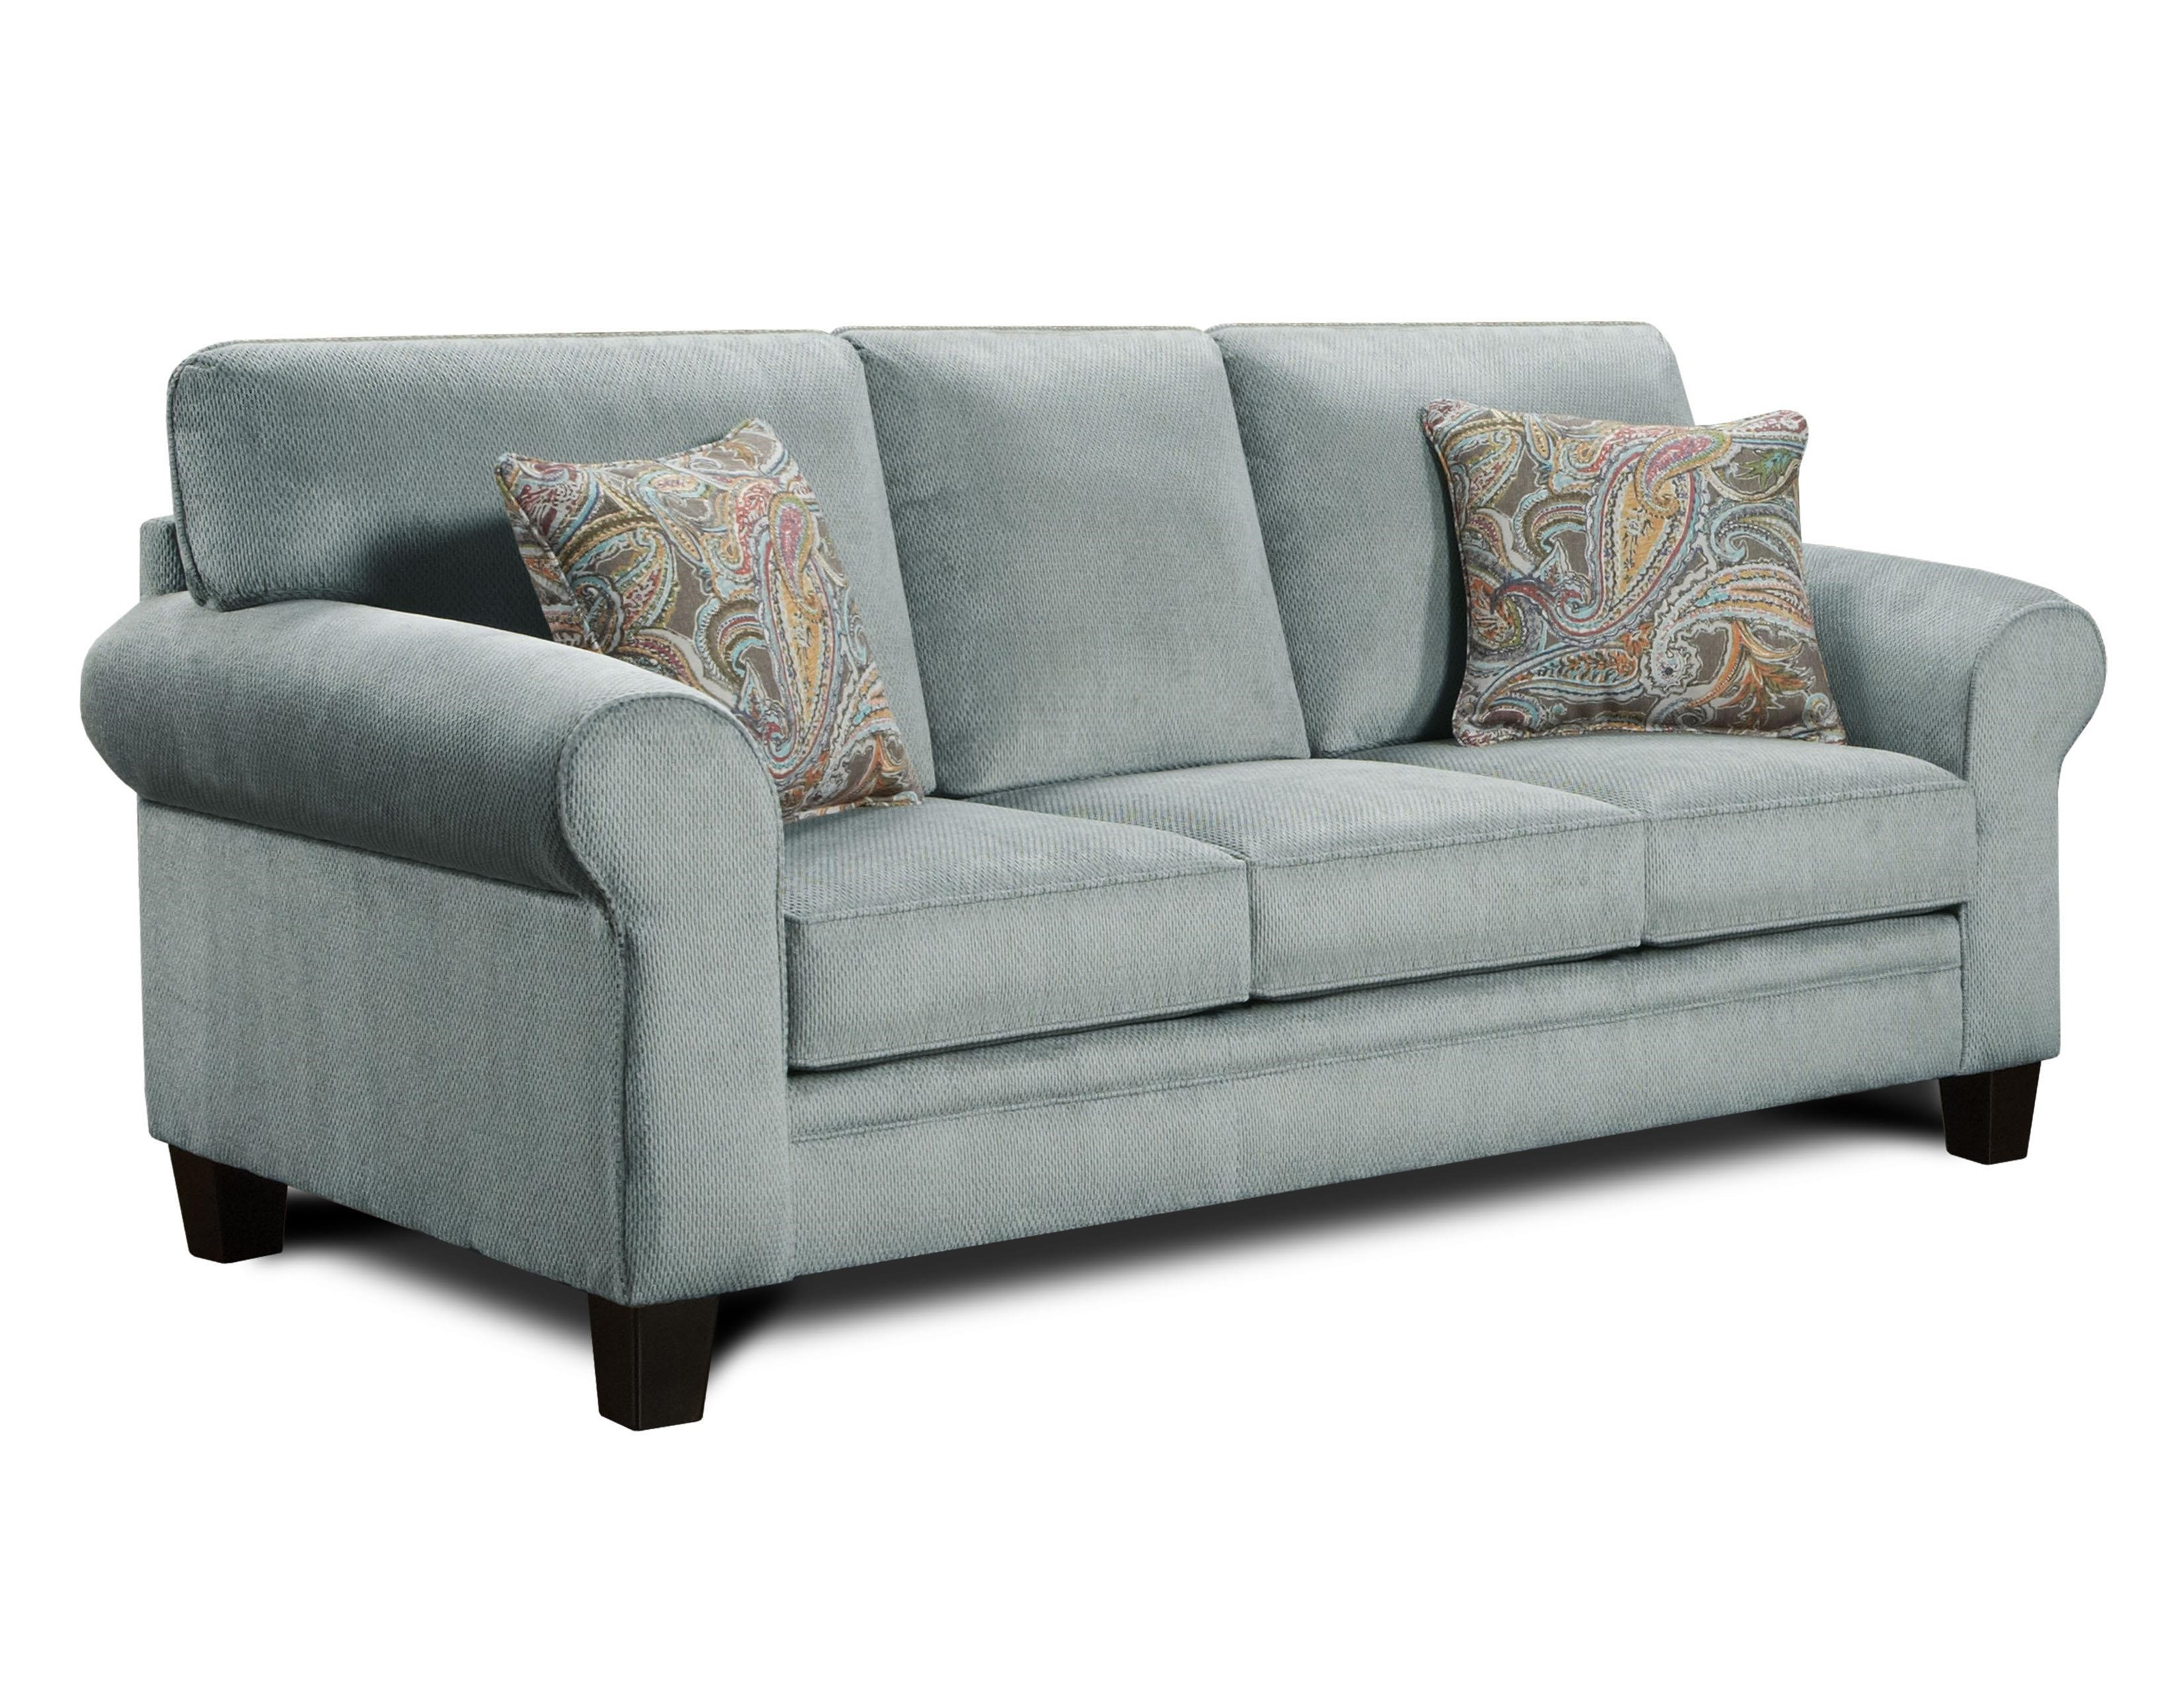 Transitional Style Sofa by J Henry | Wolf and Gardiner Wolf Furniture